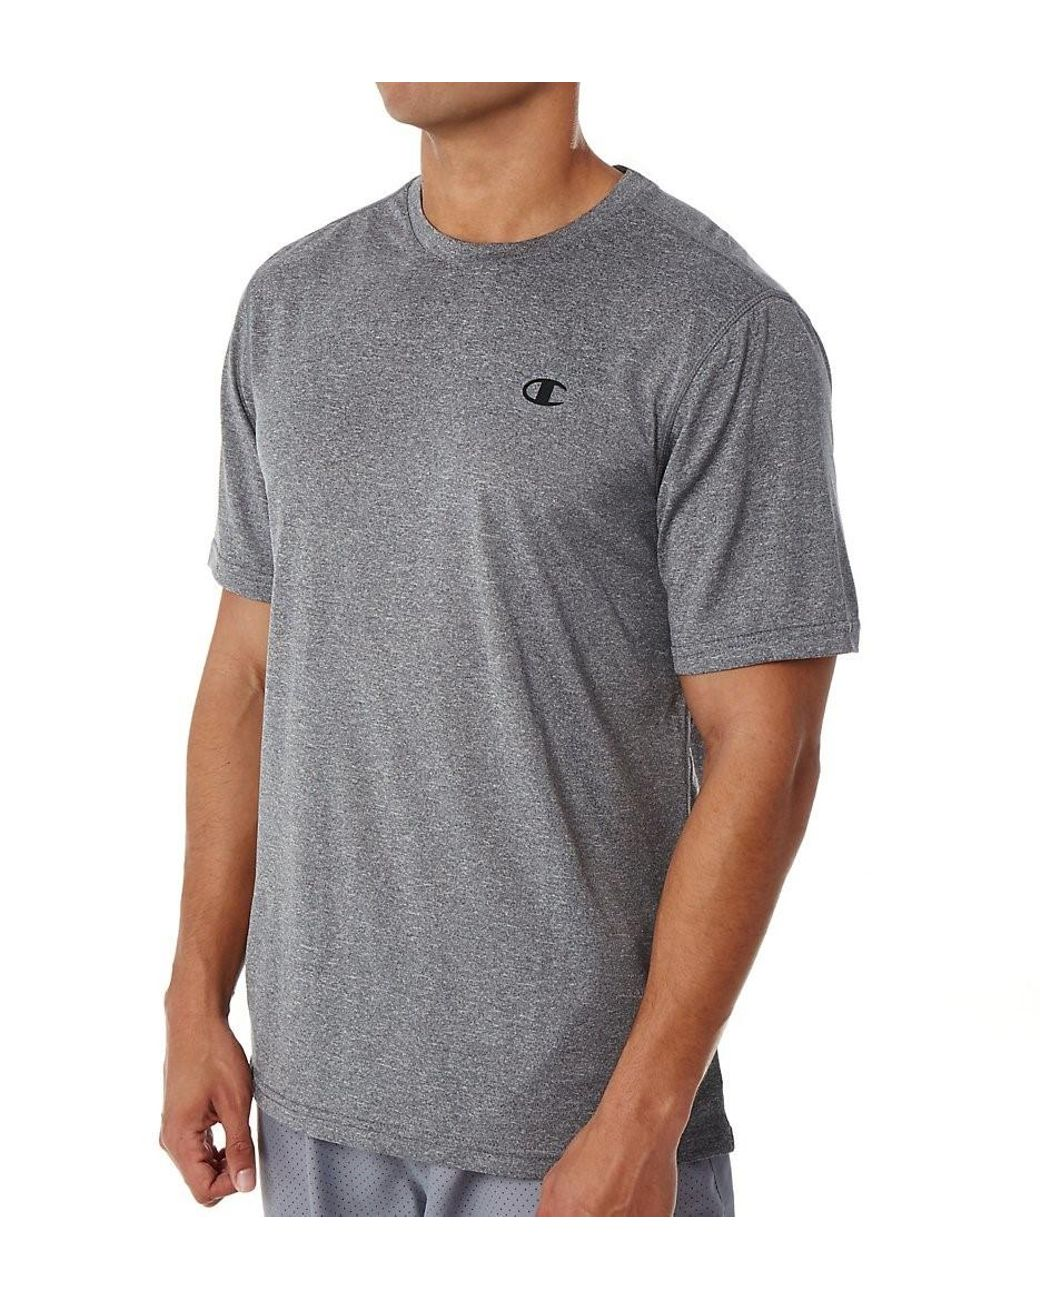 afe8a39d Champion T0766 Fresh Iq Vapor Heather Performance Tee (stealth Heather S)  in Gray for Men - Save 17% - Lyst